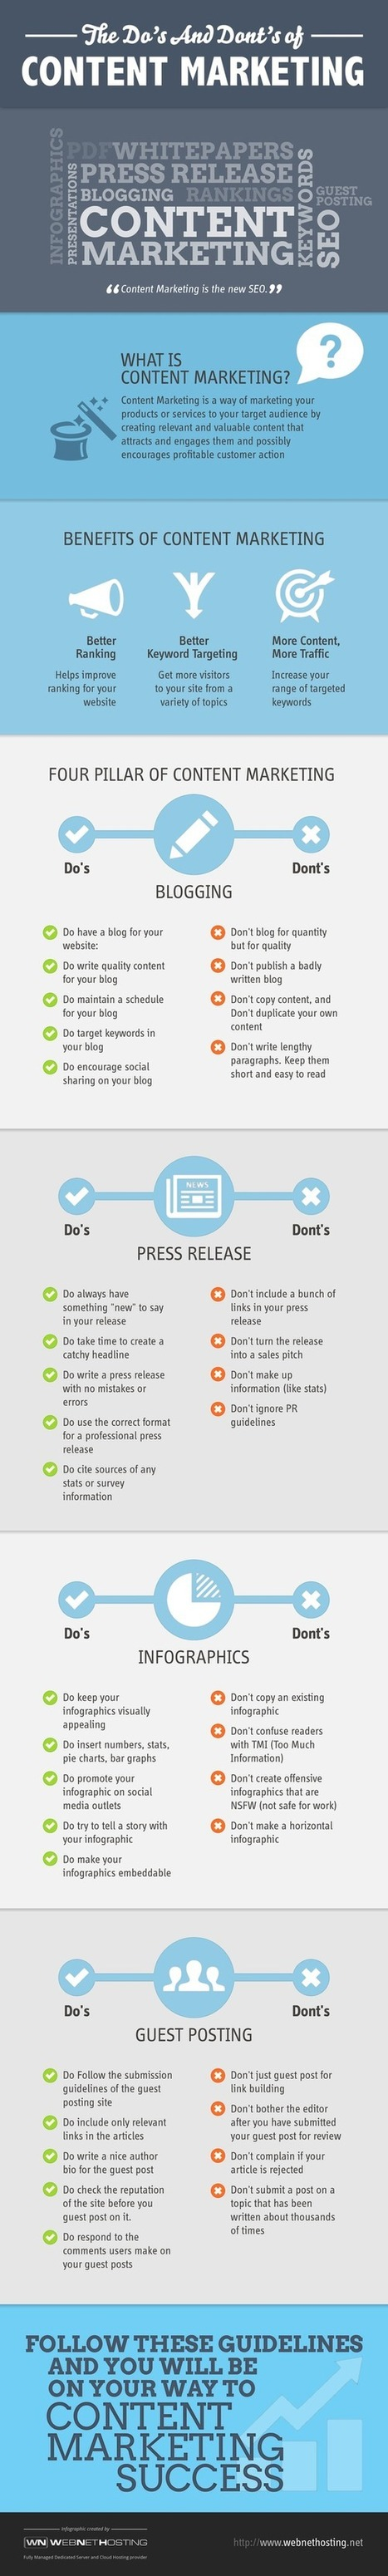 The Do's and Dont's of Content Marketing - Infographic | CW - Usefull Web stuff | Scoop.it